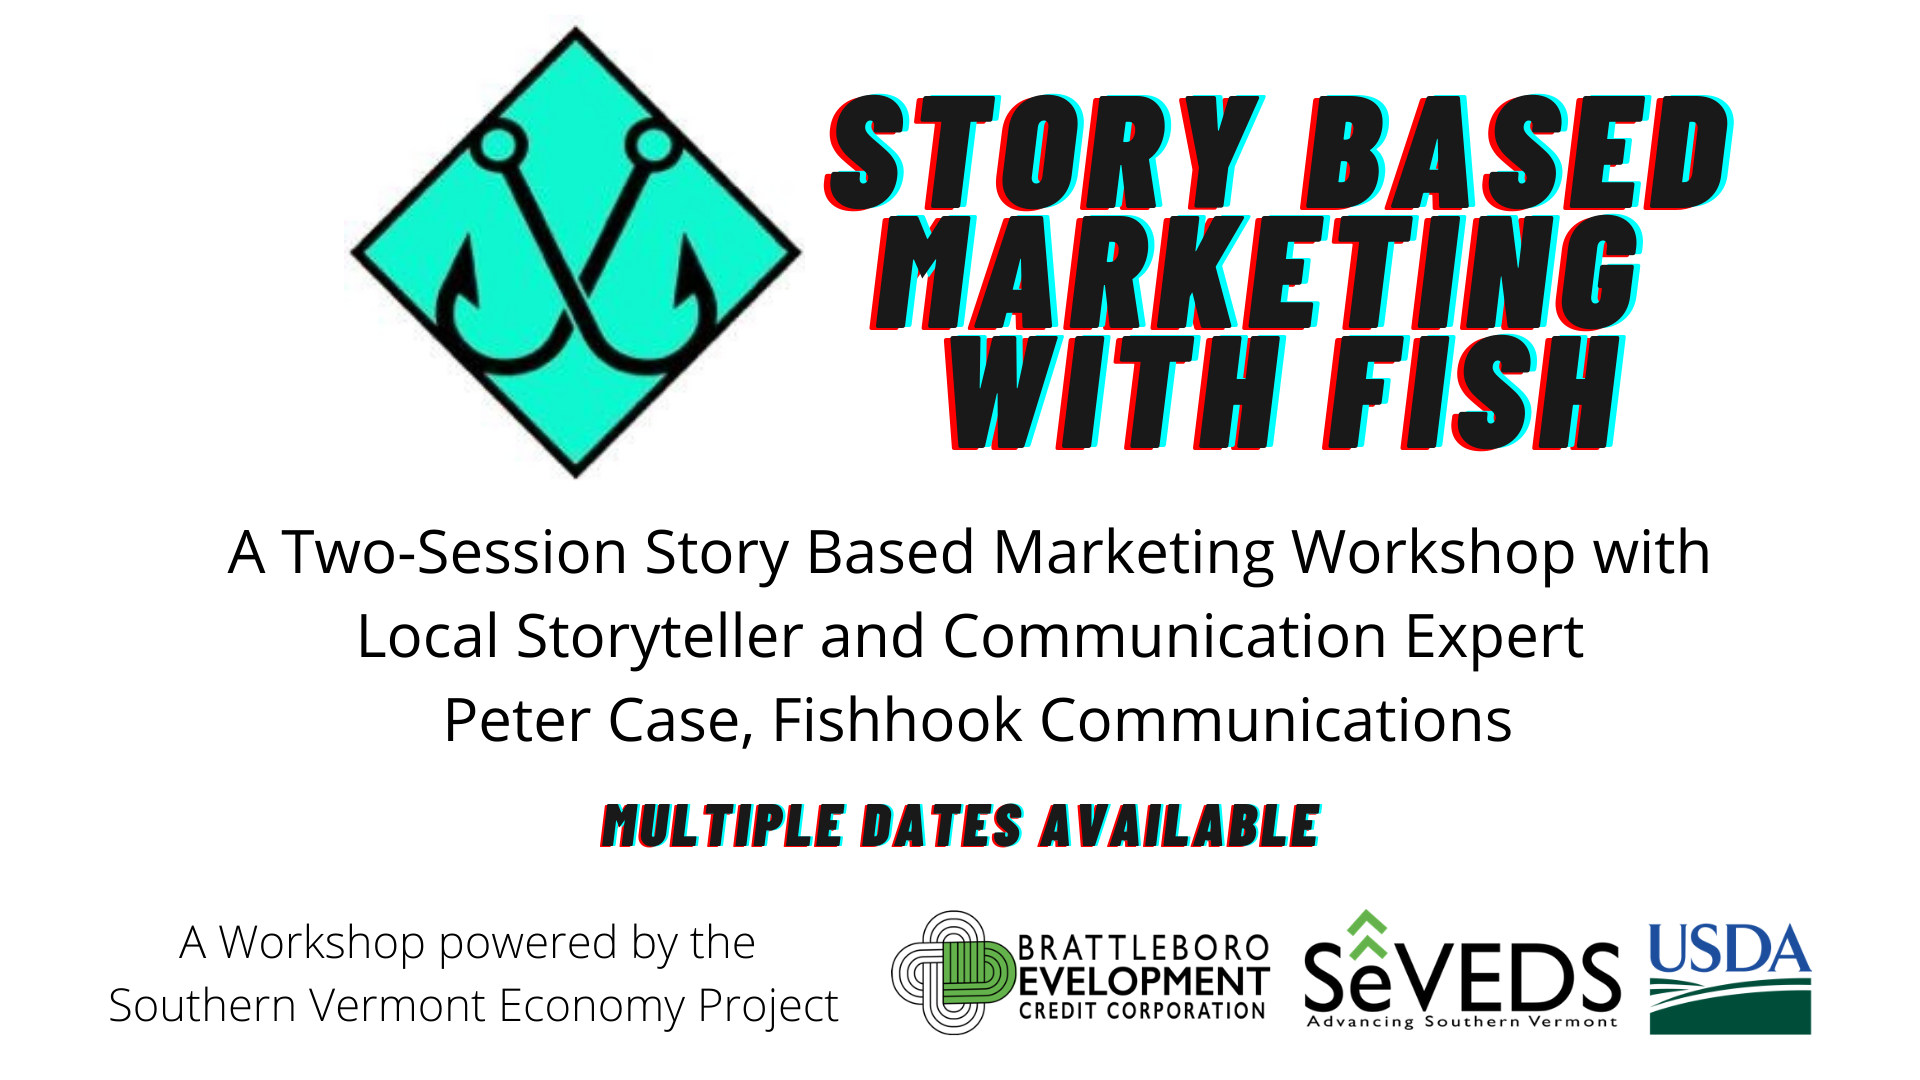 SVEP: Story Based Marketing with Fish for Nonprofits, Municipalities, and Small Businesses (Cohort 3)